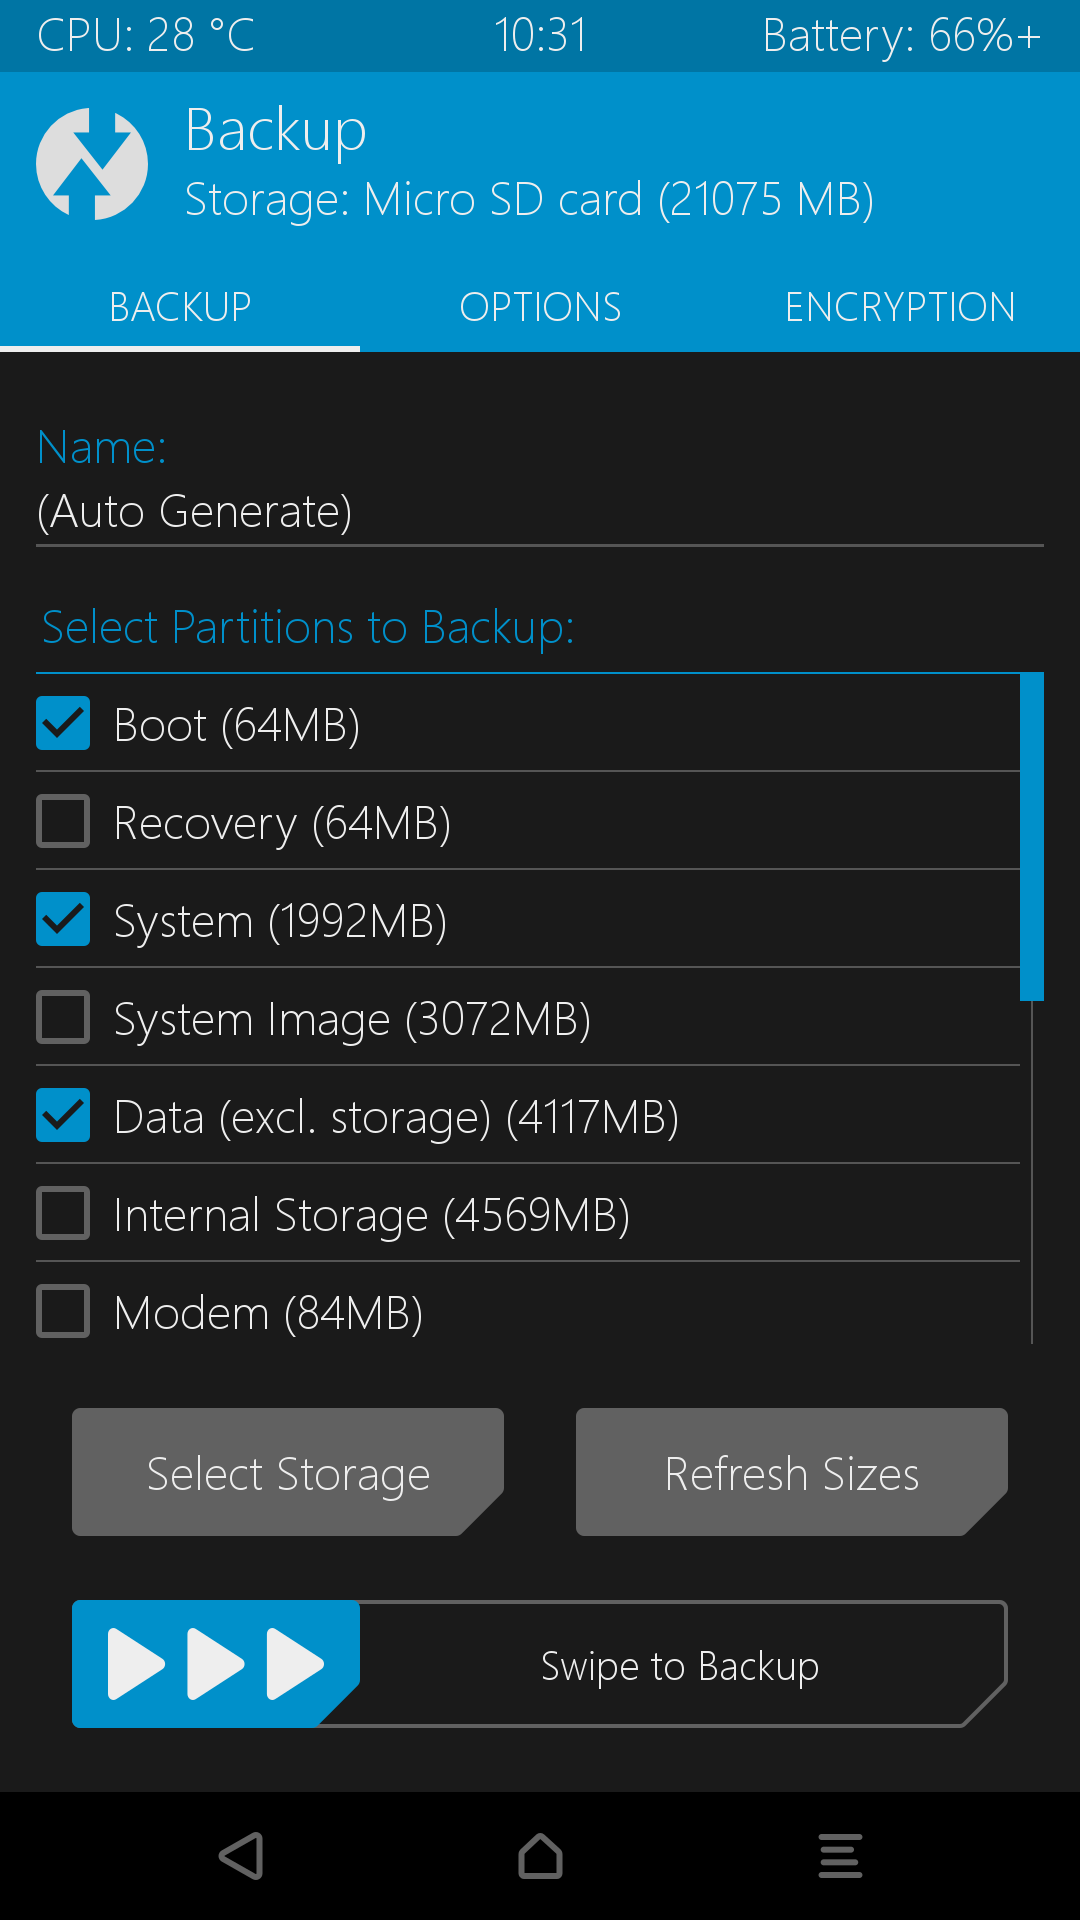 Mi Note 3 Twrp 3 2 3-0 Recovery [jason] [unofficial